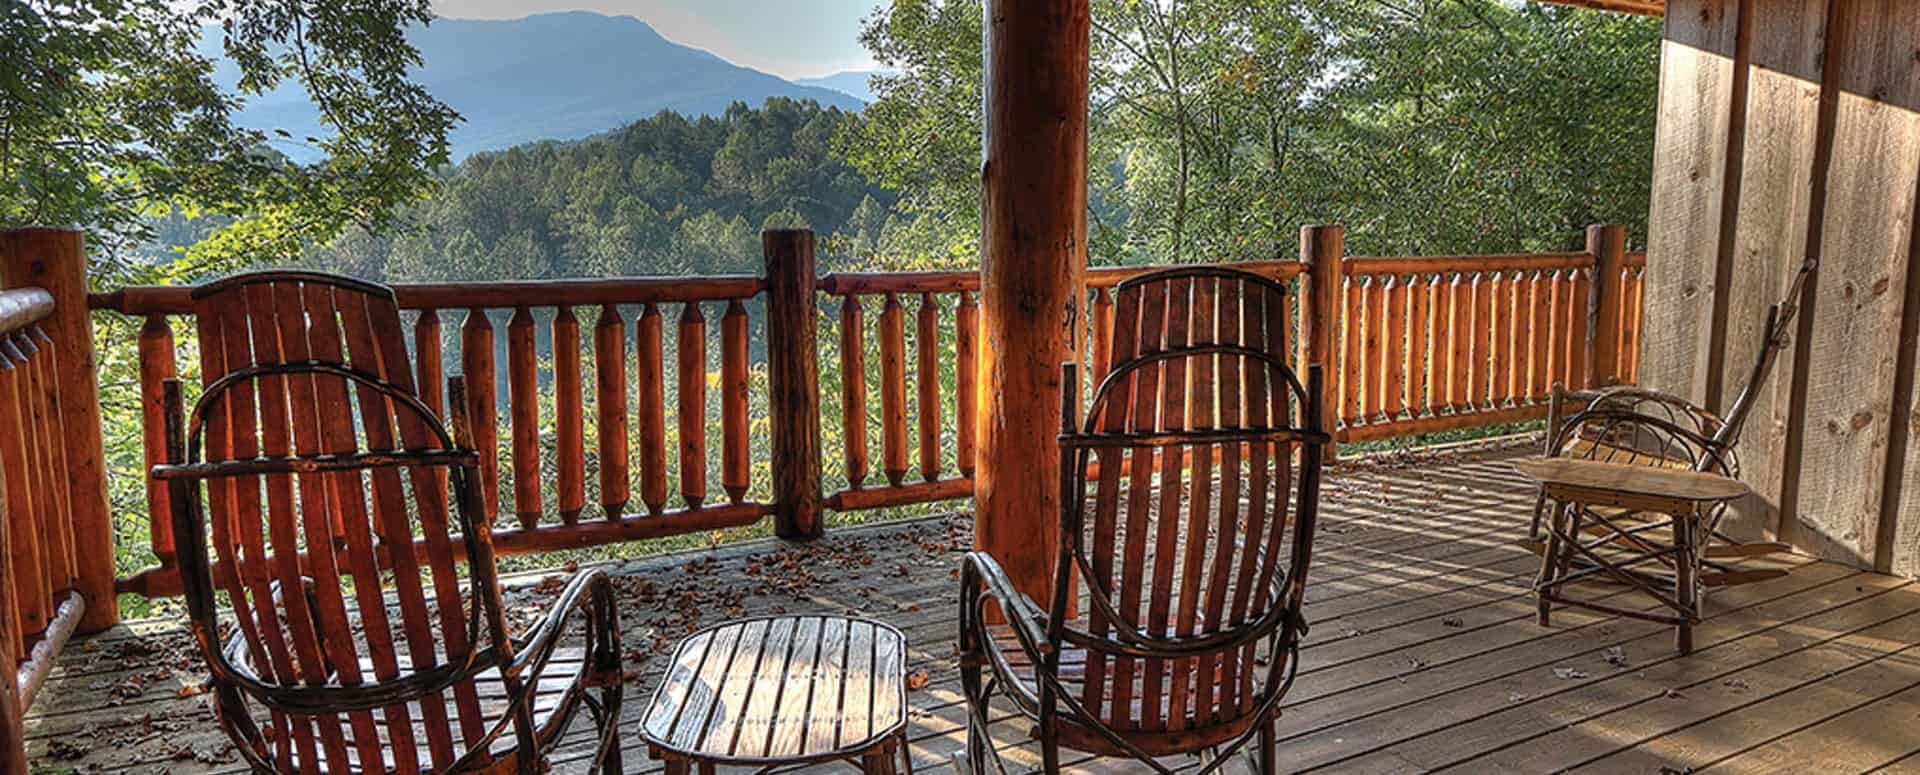 4 Bedroom Cabins In Gatlinburg Tn Gatlinburg Cabin Rentals